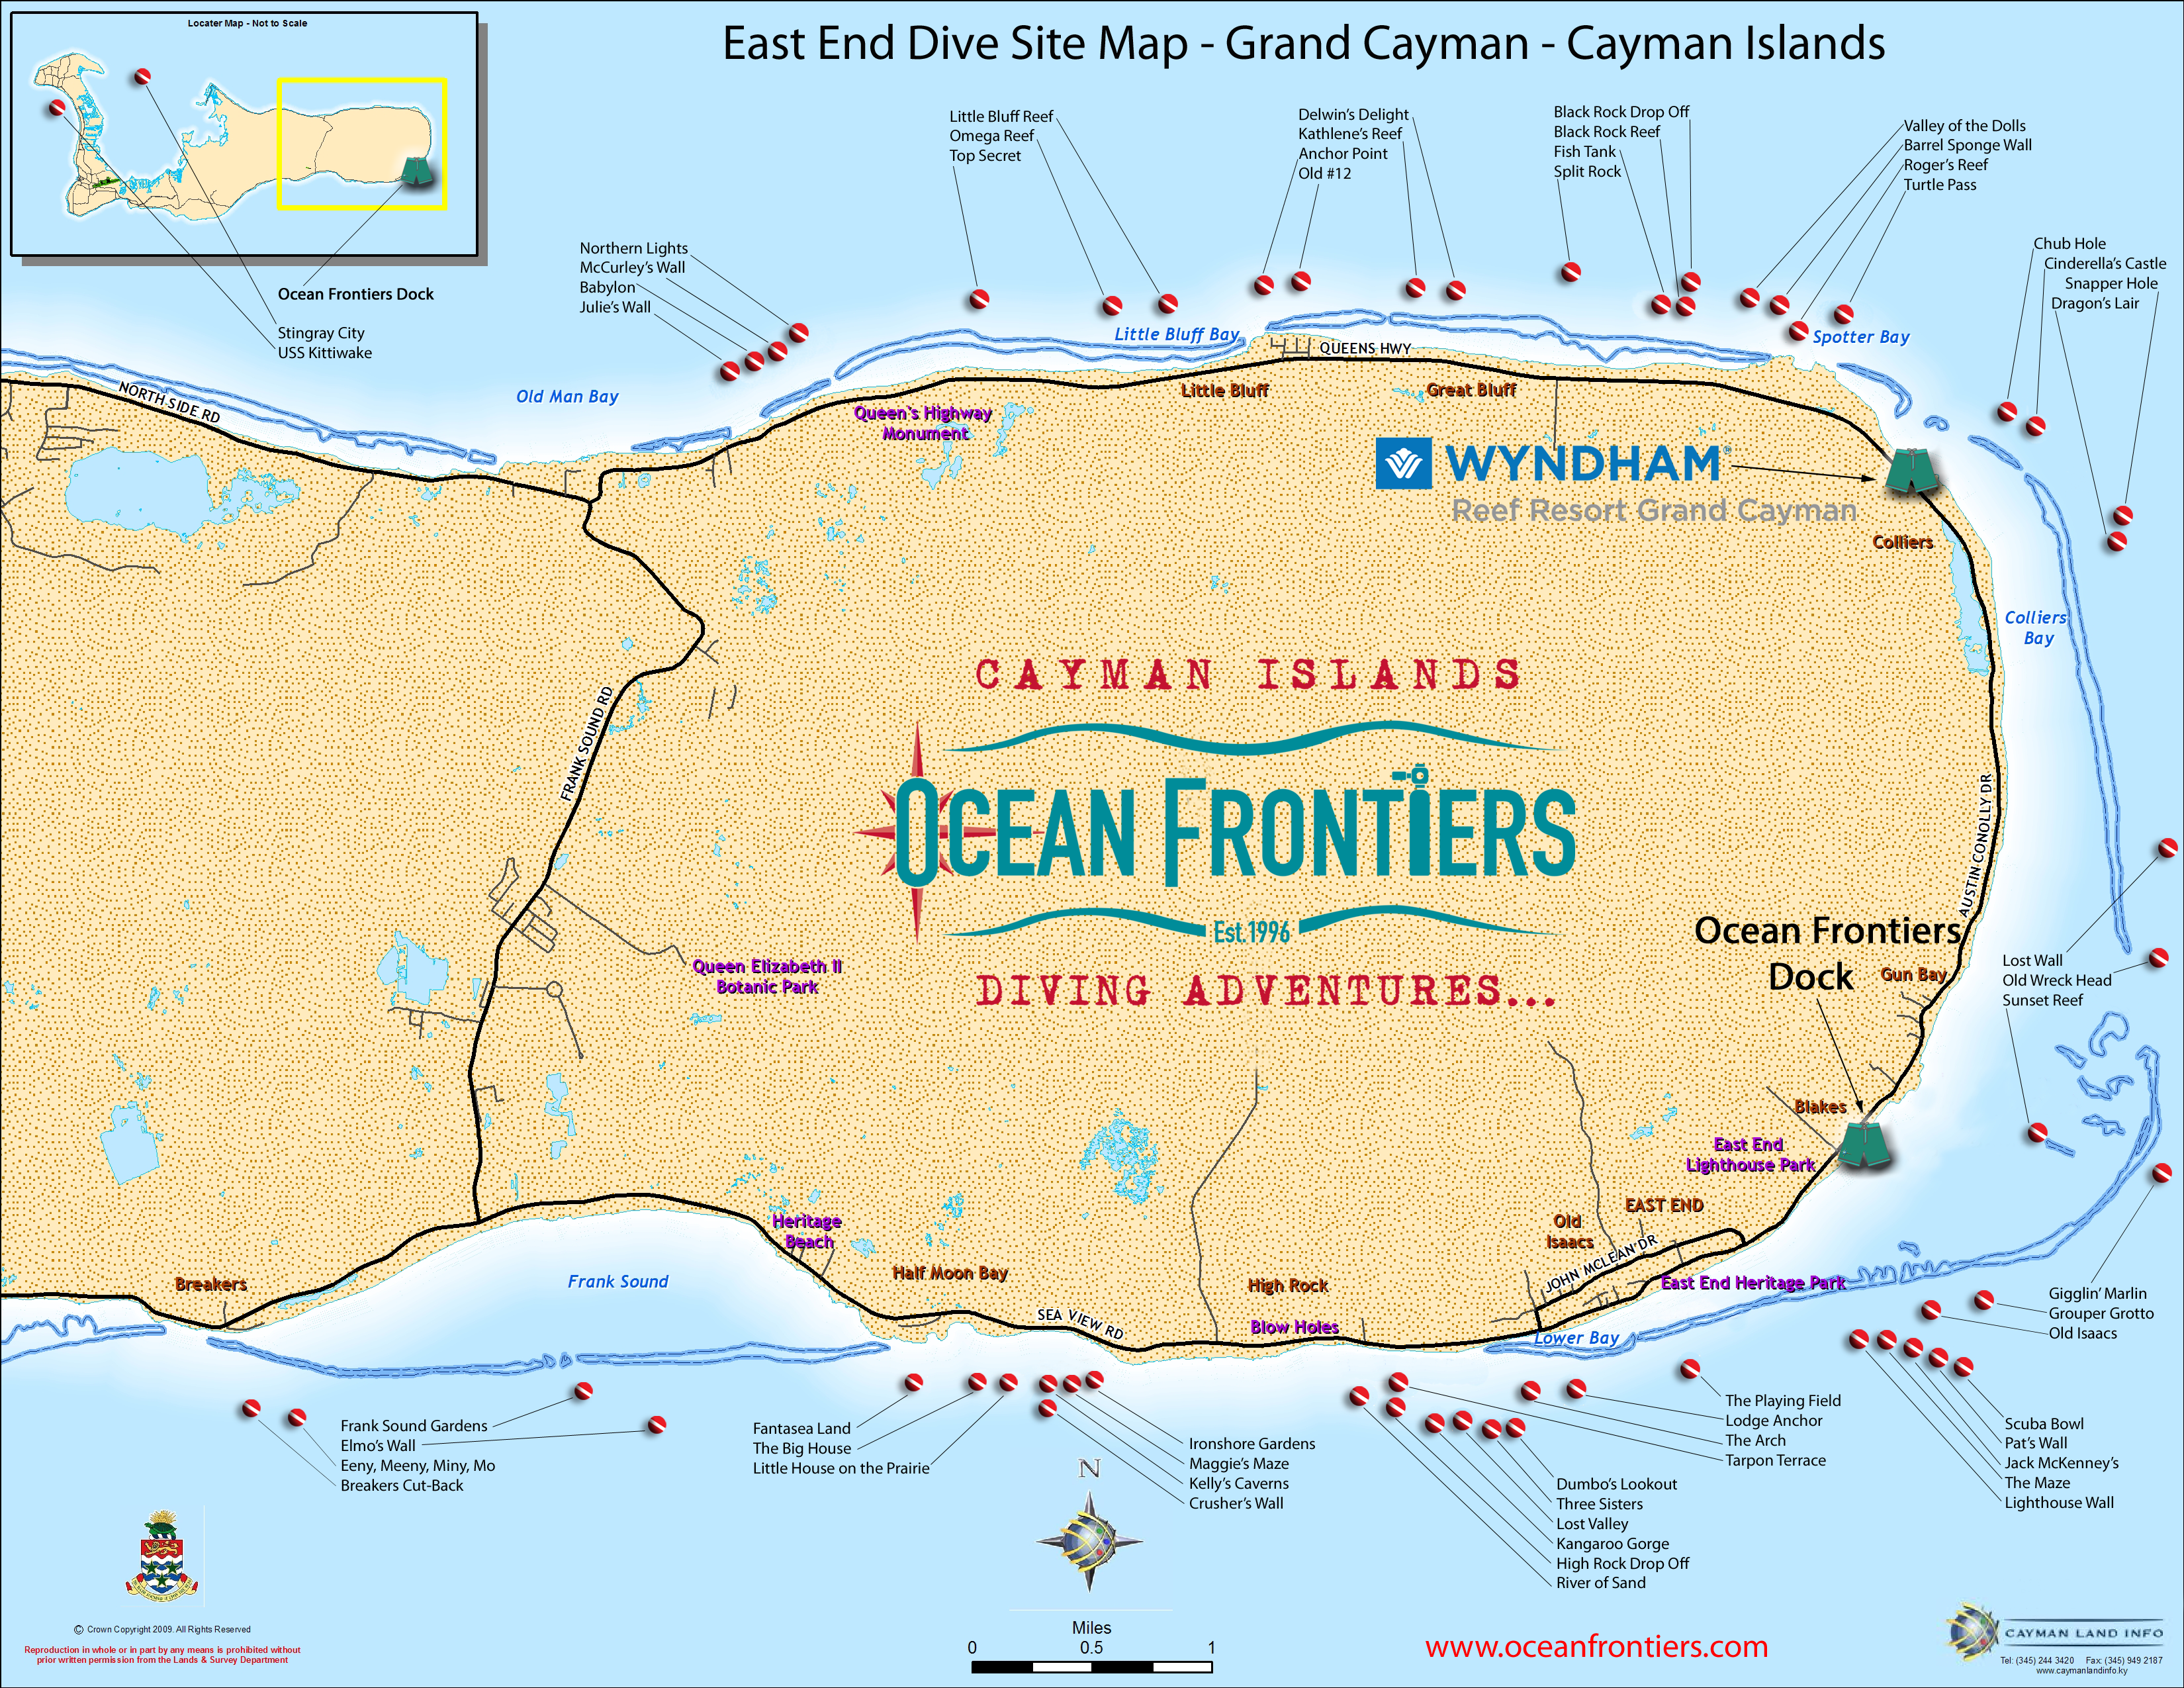 Dive into the Cayman Islands - Wyndham Hotels Grand Cayman Map Of Hotels on map of yosemite national park hotels, map of turks and caicos hotels, map of exuma hotels, map of asheville hotels, map of eleuthera hotels, map of us virgin islands hotels, map of st. kitts hotels, map of new york city hotels, map of vallarta hotels, map of san francisco hotels, map of cayo santa maria hotels, map of georgia hotels, map of long island hotels, map of positano hotels, map of wisconsin dells hotels, map of seven mile beach hotels, map of saratoga springs hotels, map of panama hotels, map of texas hotels, map of great barrier reef hotels,